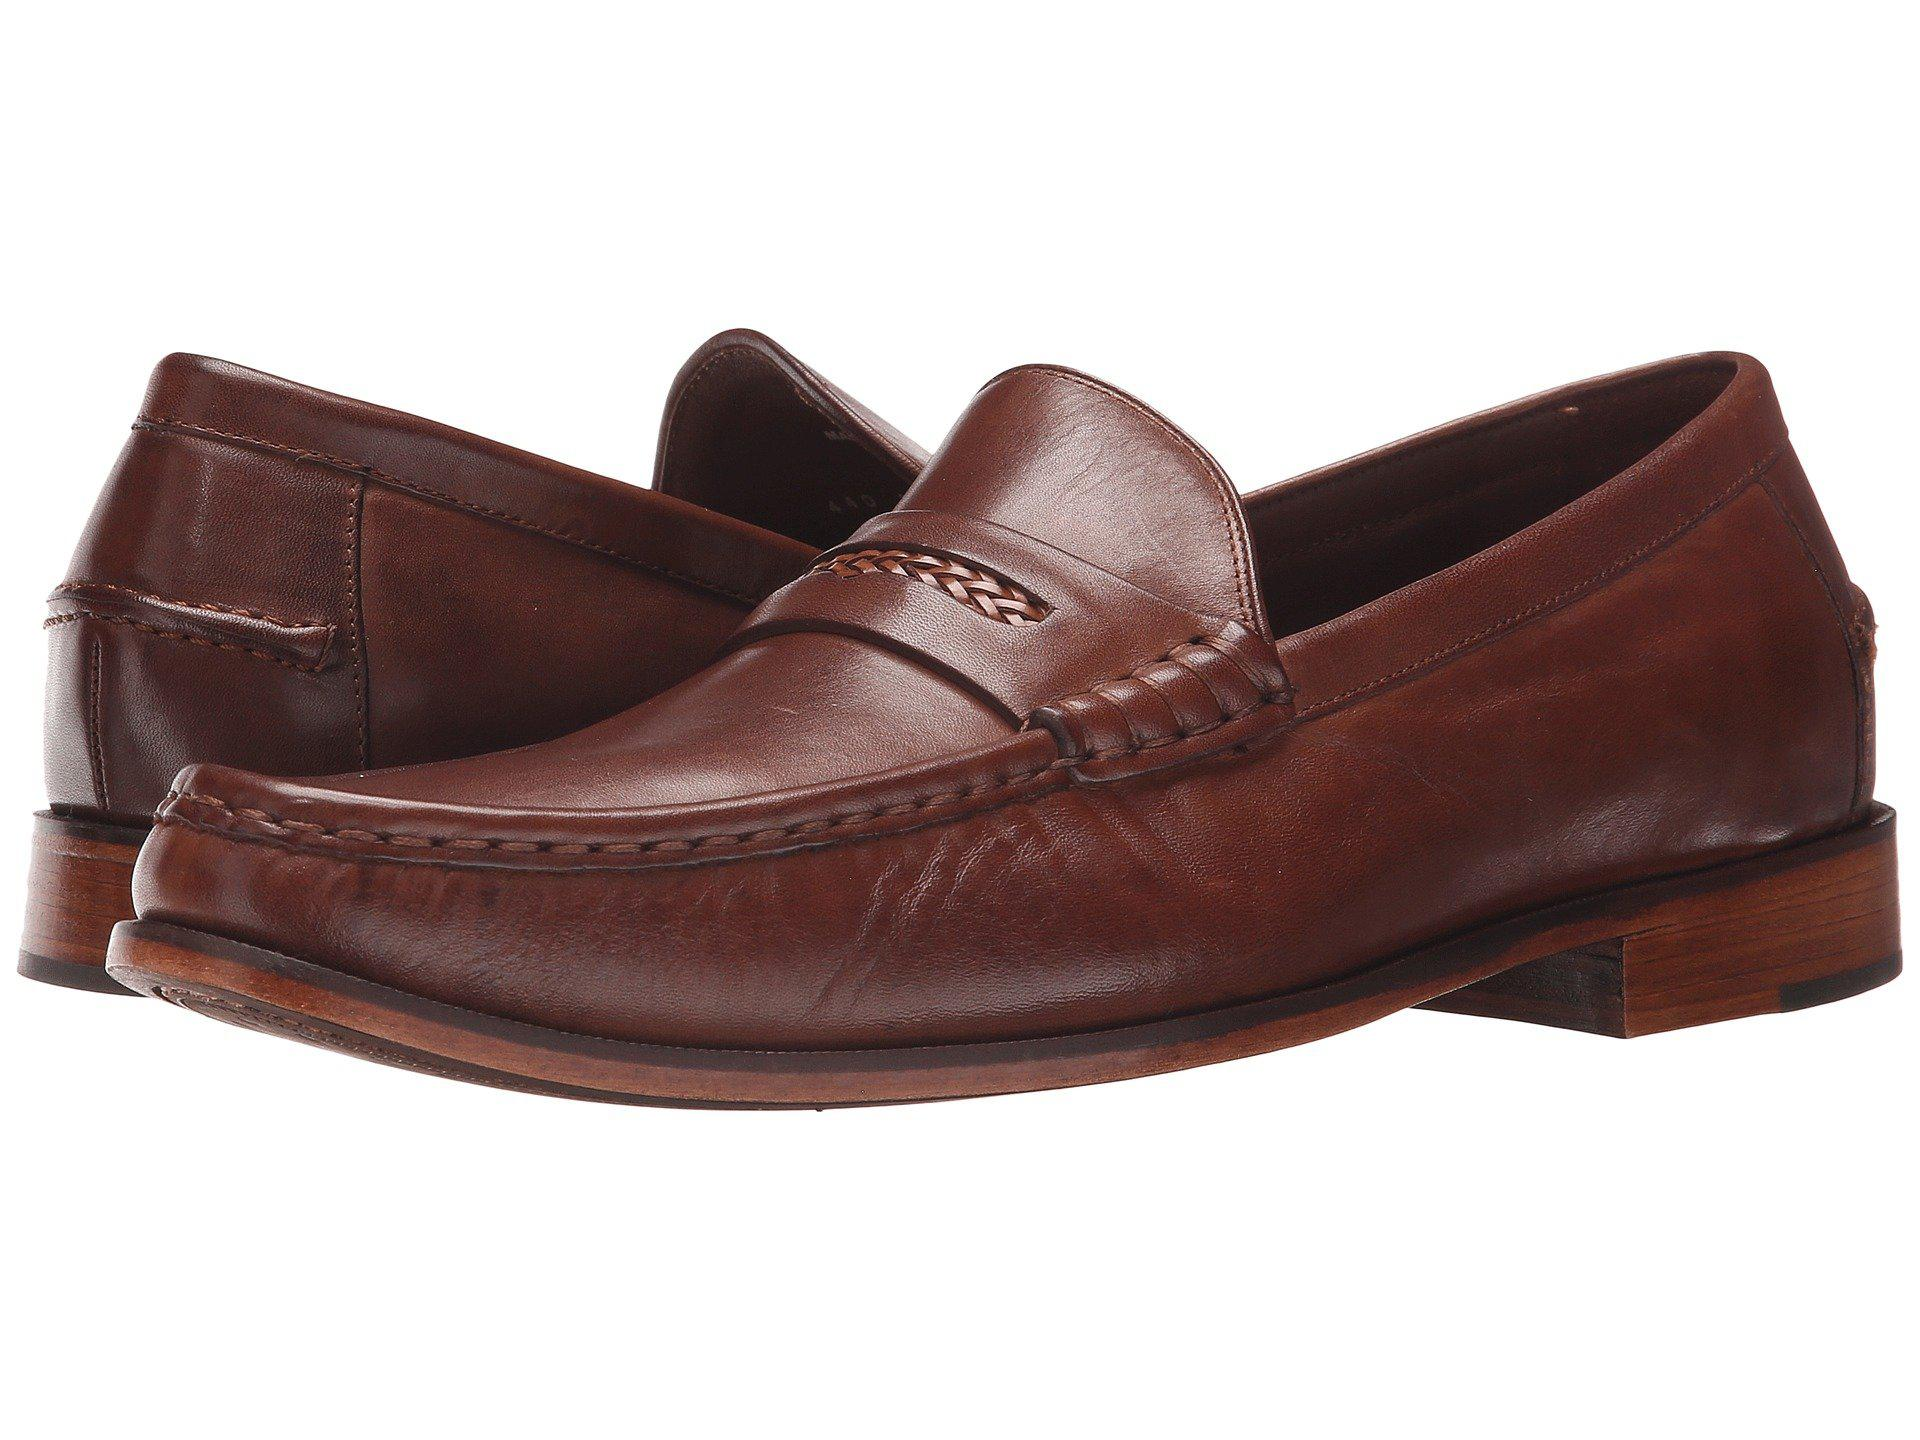 f75848cee53 Lyst - Cole Haan Pinch Gotham Penny Loafer in Brown for Men